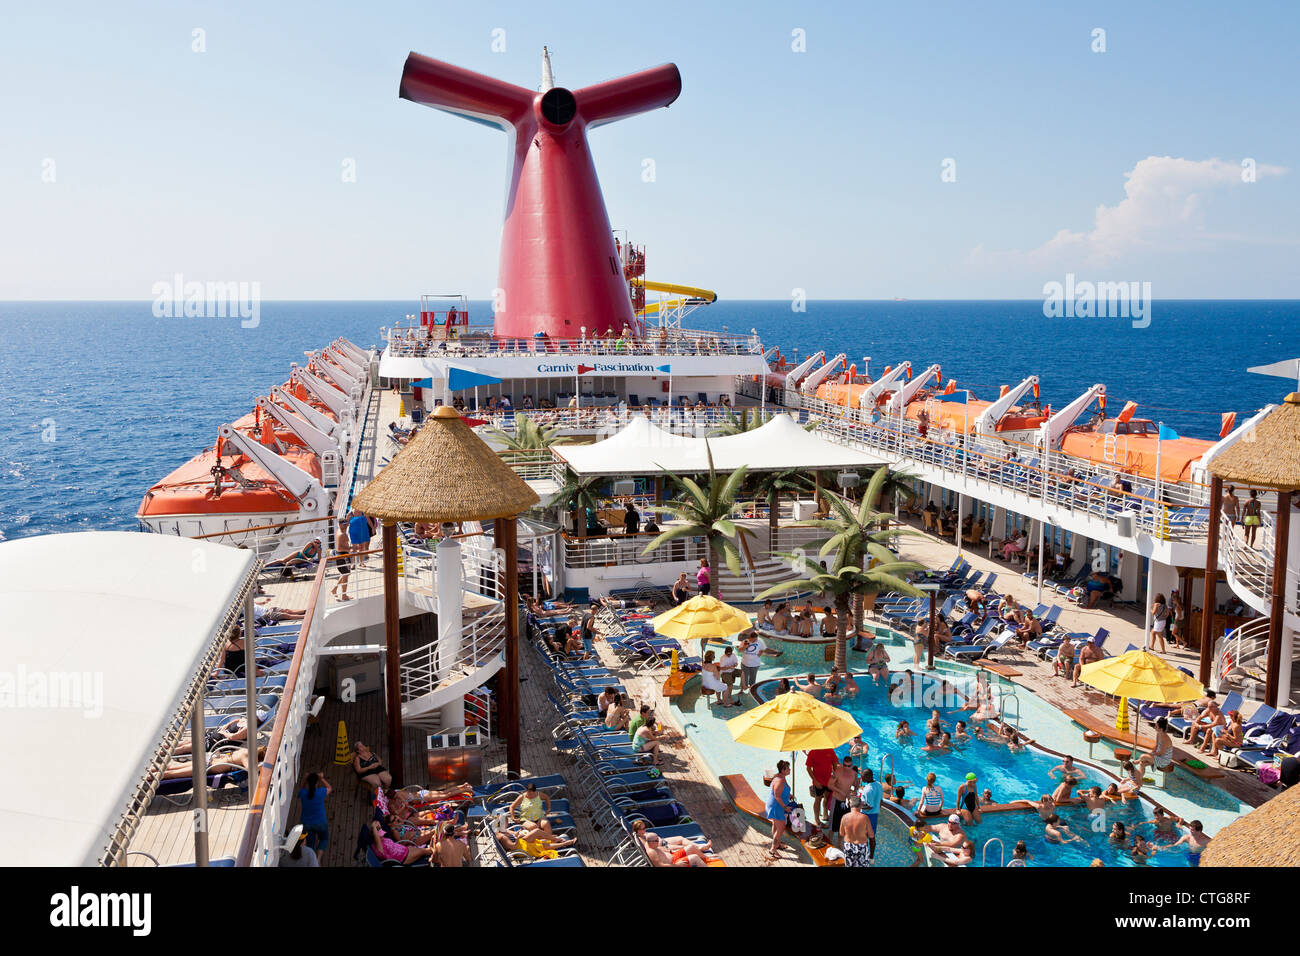 Cruise passengers enjoying the sun on deck of Carnival Fascination cruise ship - Stock Image